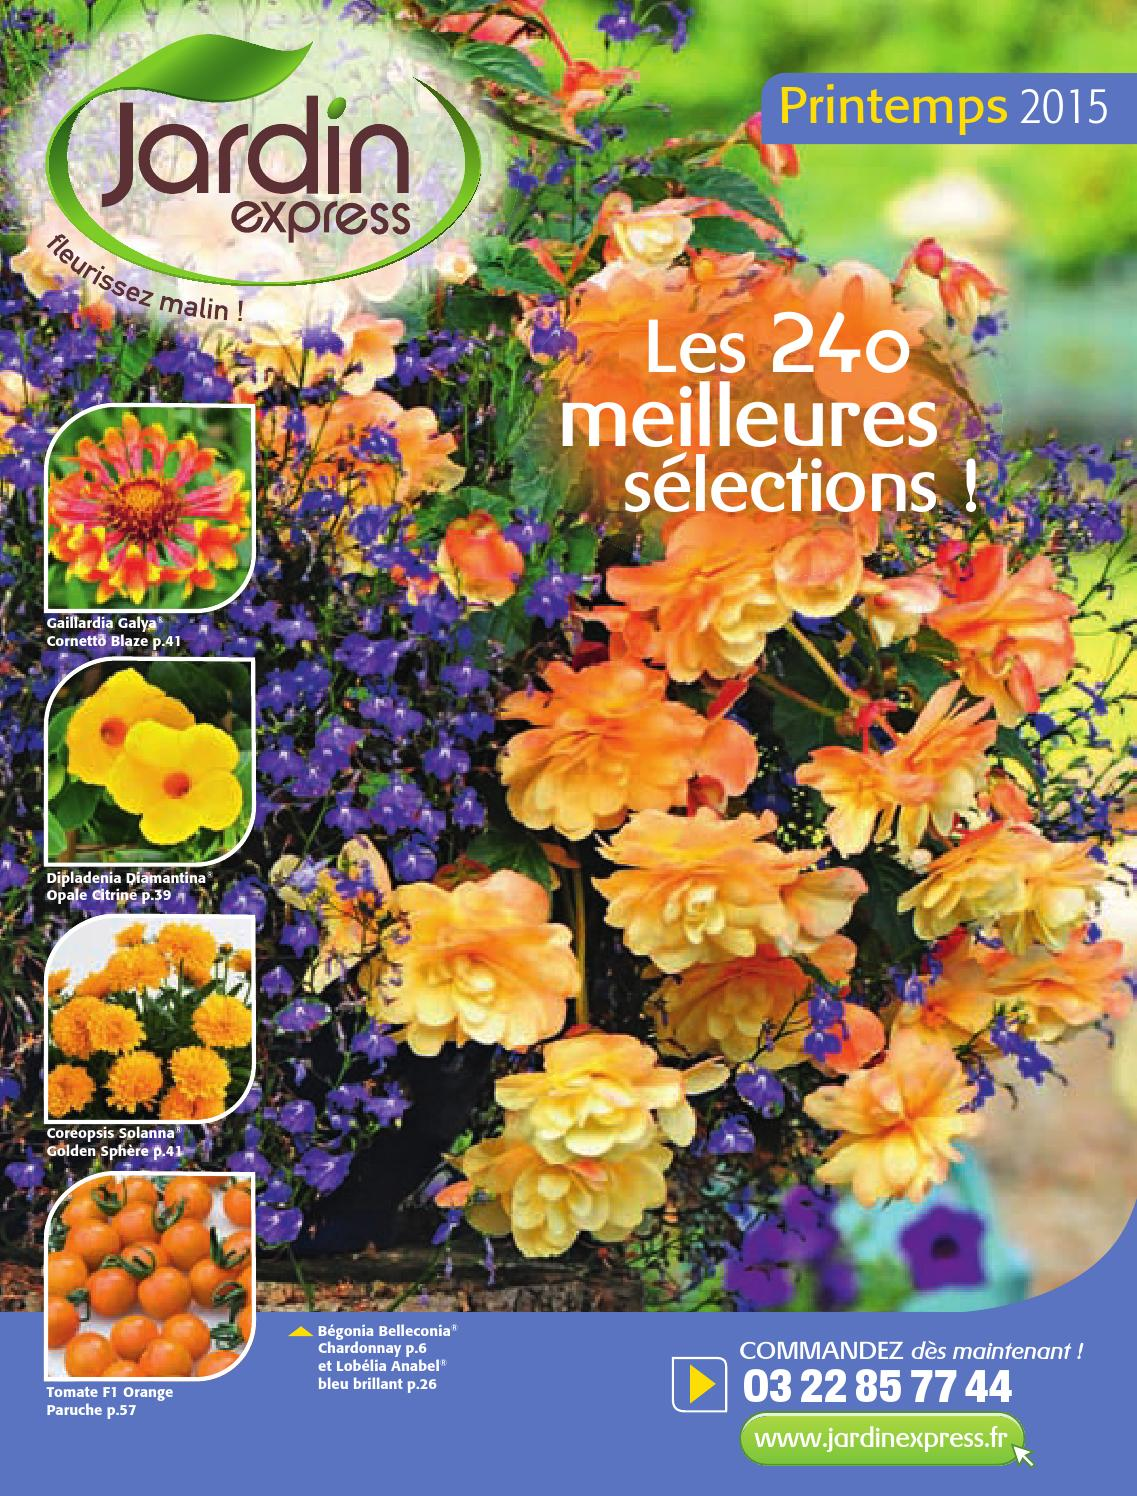 Jardin express printemps 2015 by blma issuu for Jardin express 2015